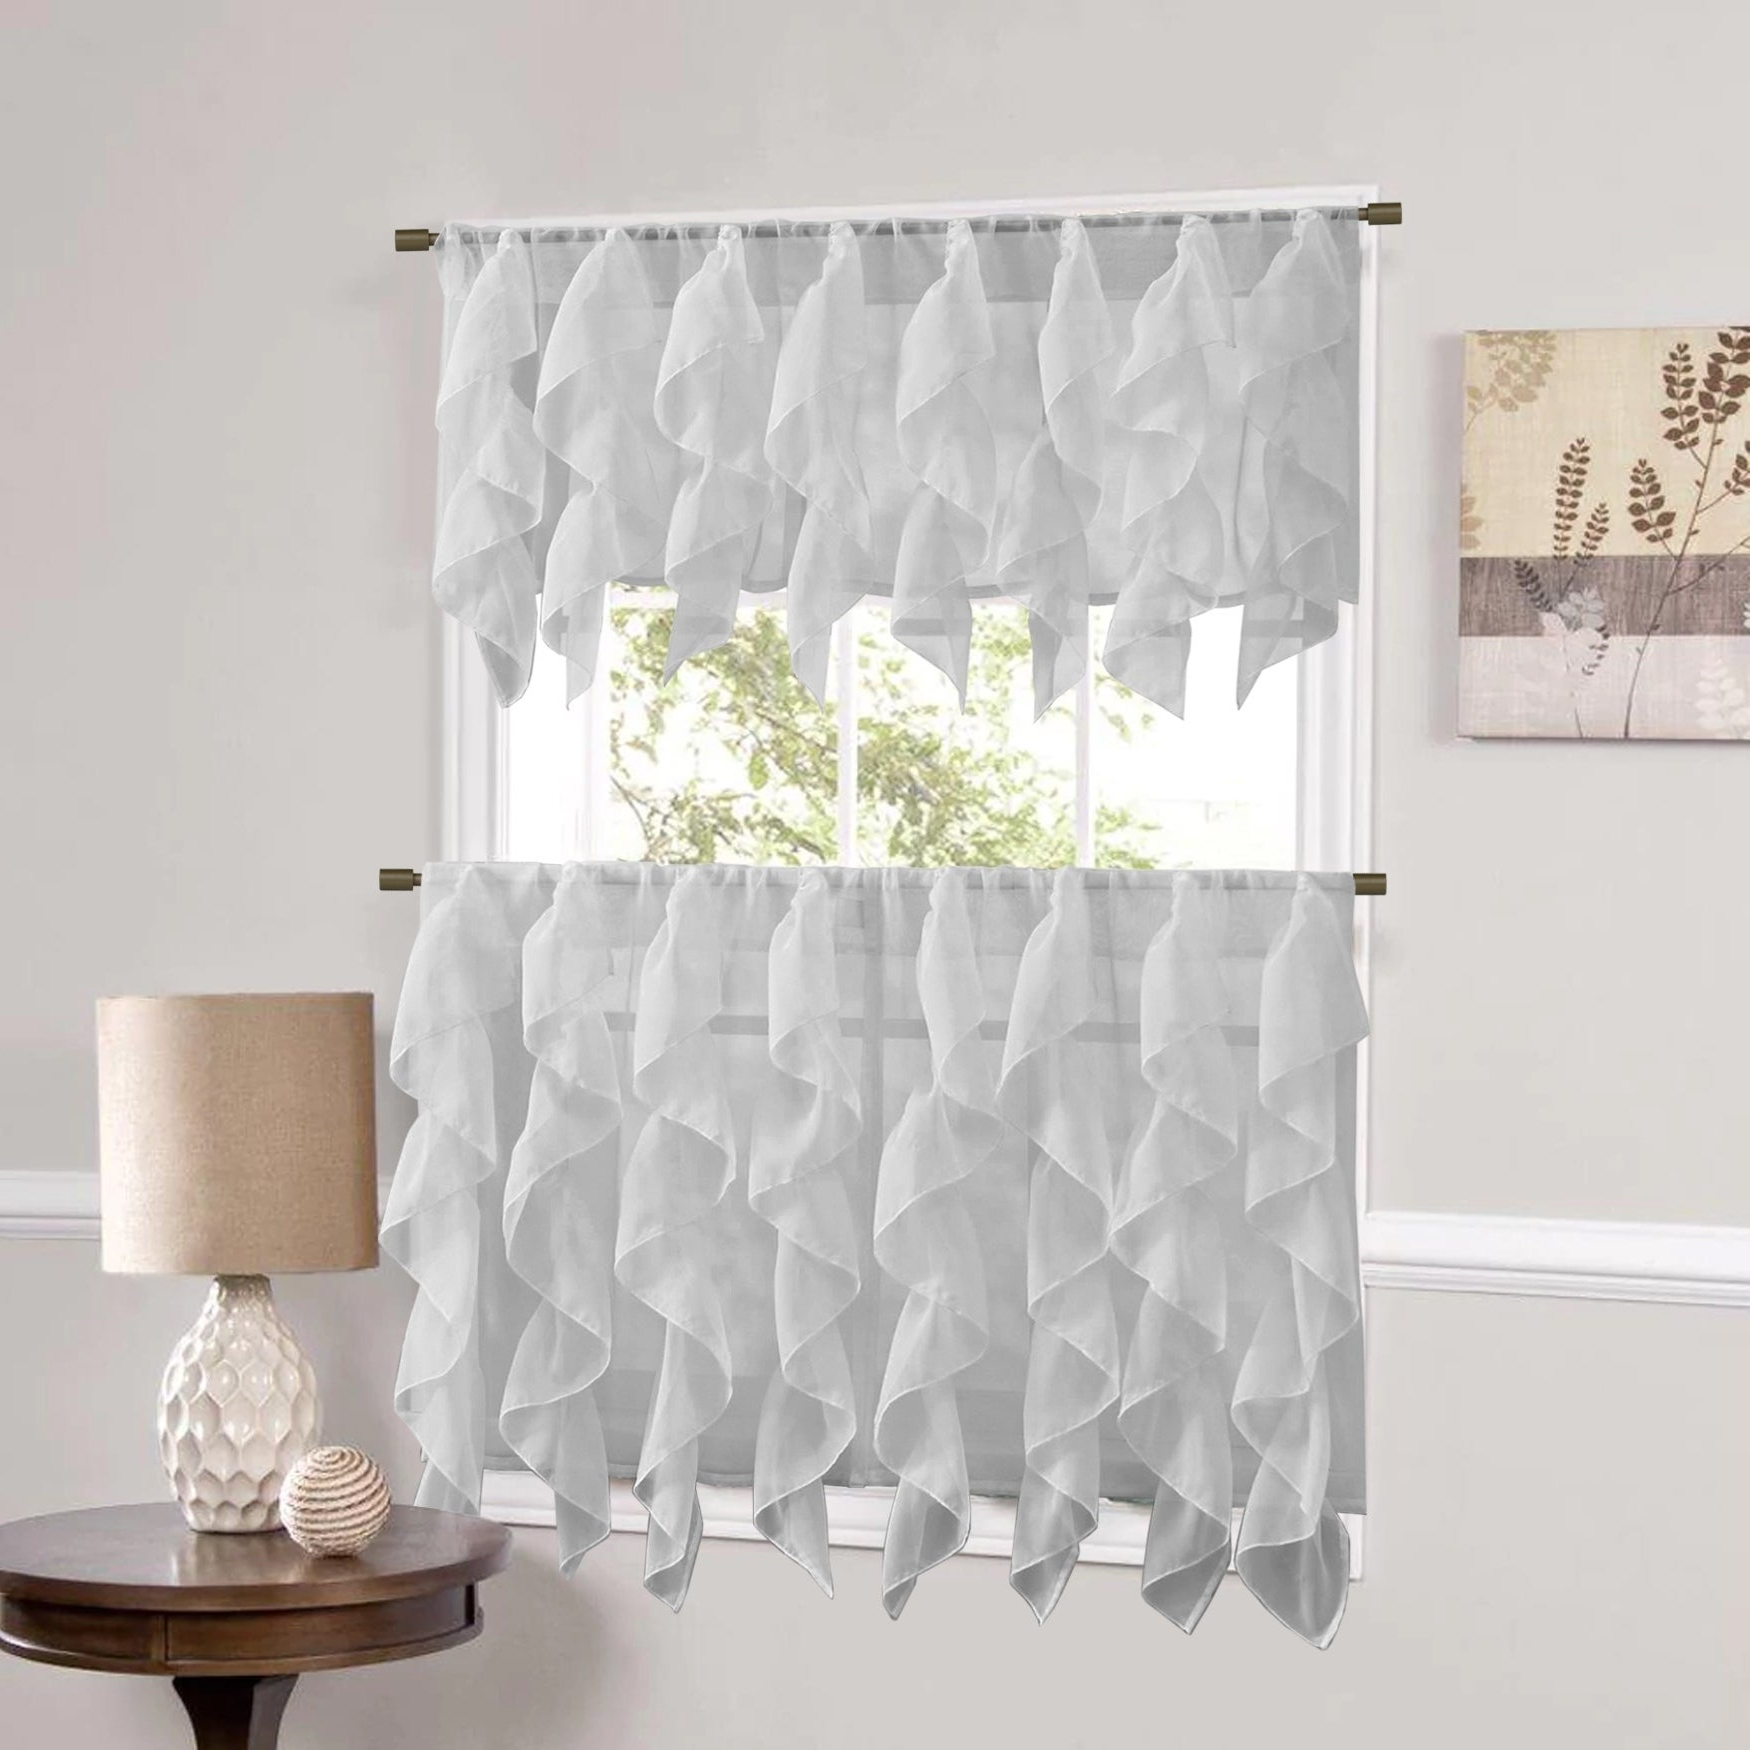 Best And Newest Sweet Home Collection Silver Vertical Ruffled Waterfall Valance And Curtain Tiers Throughout Silver Vertical Ruffled Waterfall Valance And Curtain Tiers (View 1 of 20)